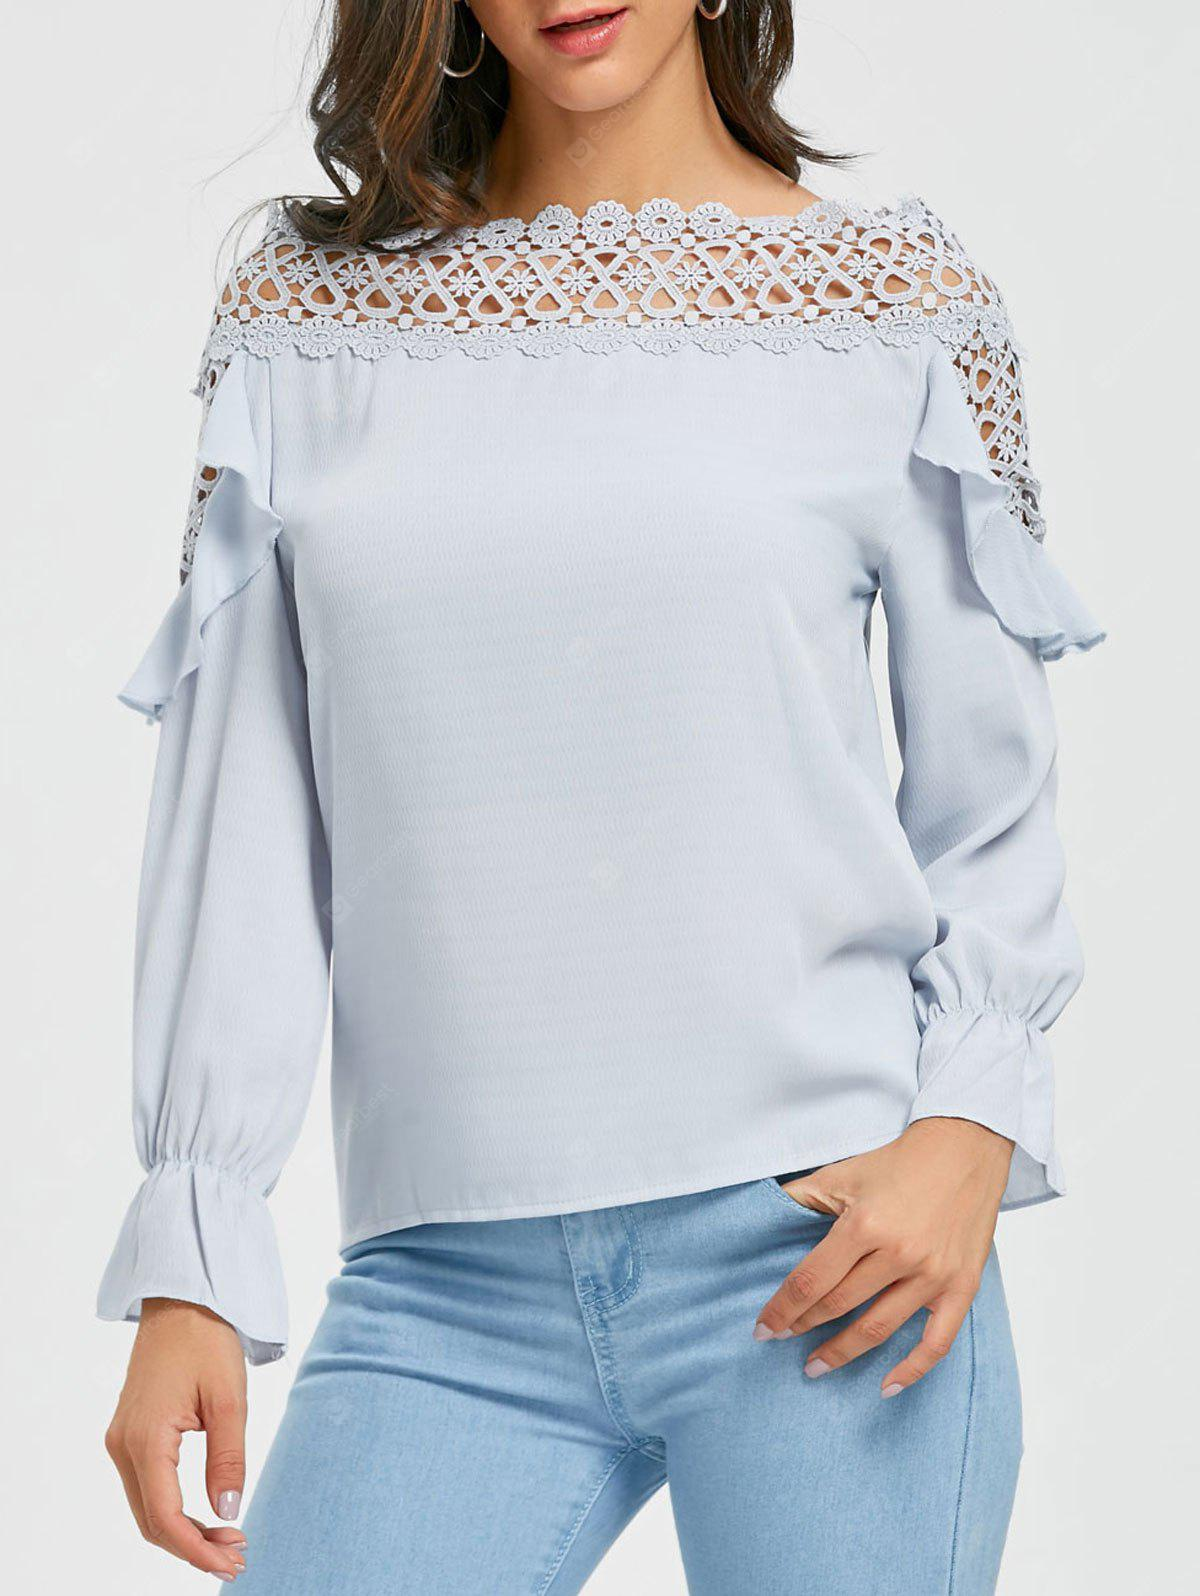 Crochet Cut Out Ruffle Blouse